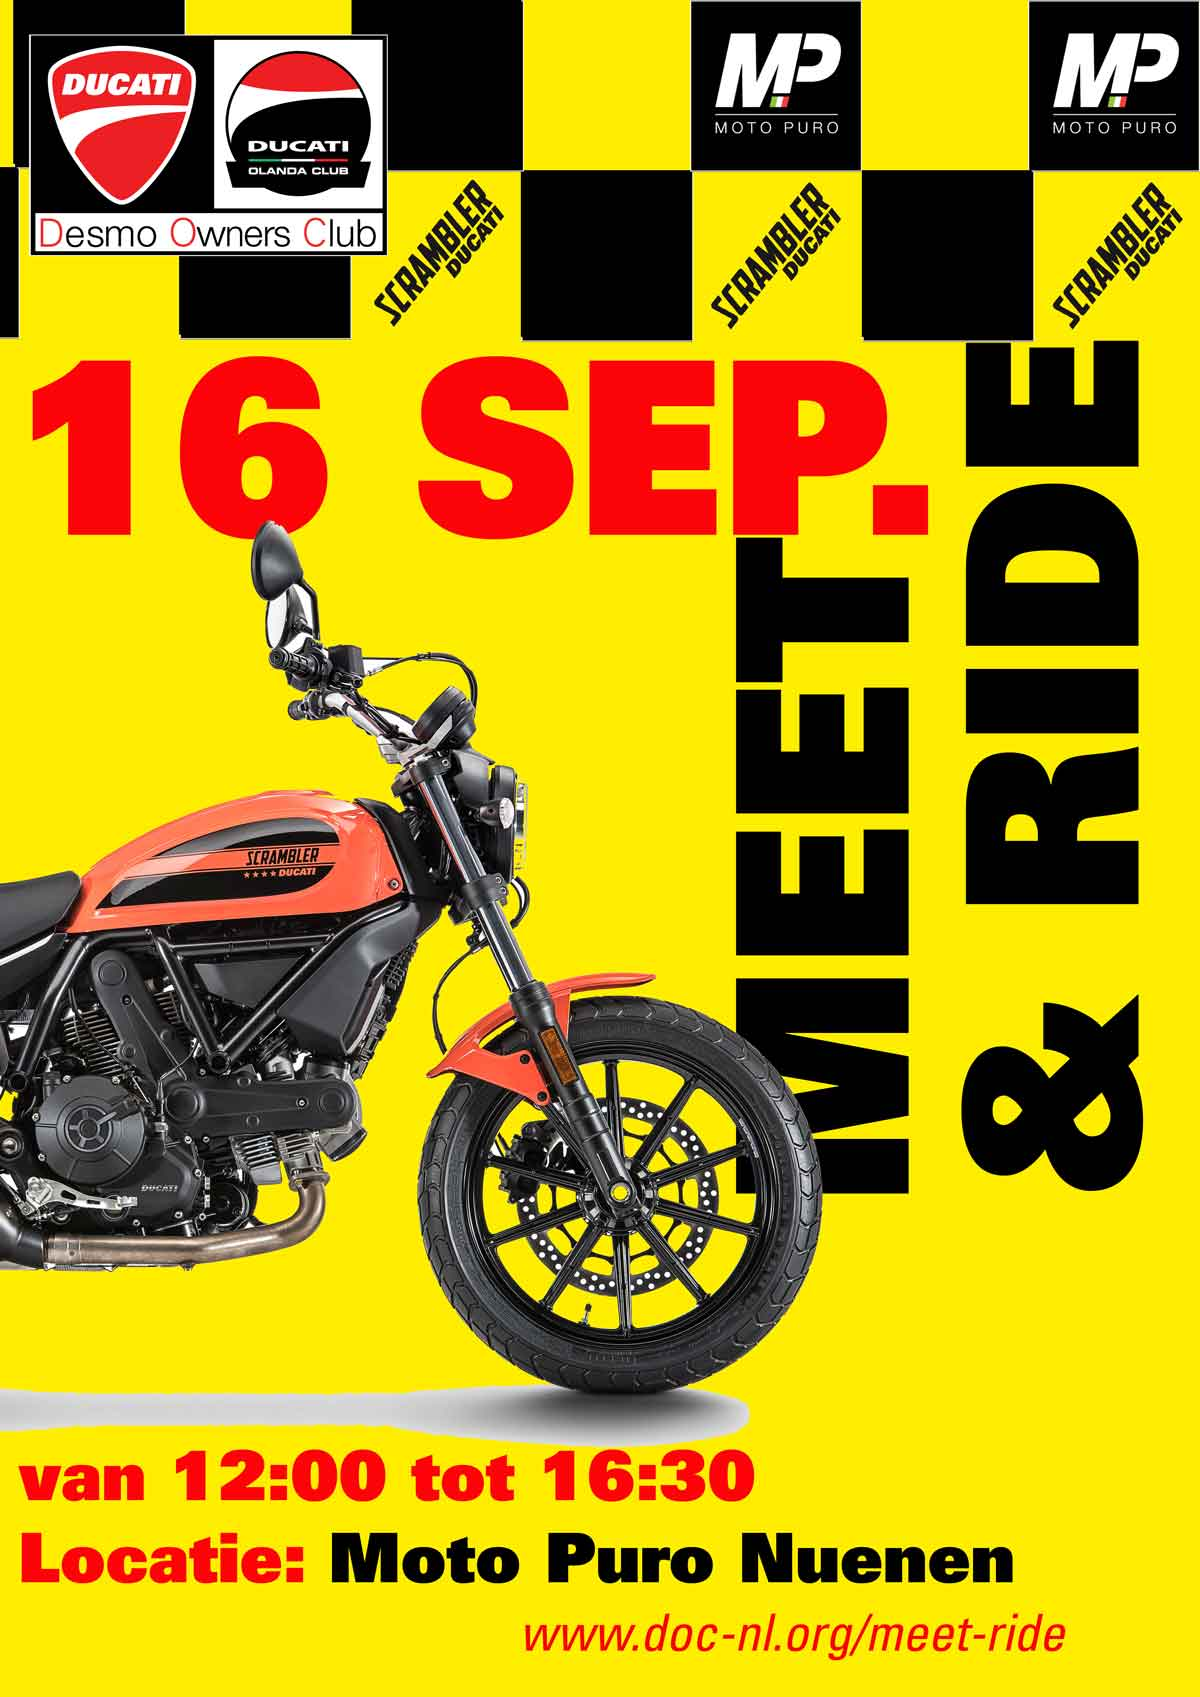 Scrambler Meet & Greet DOC-NL